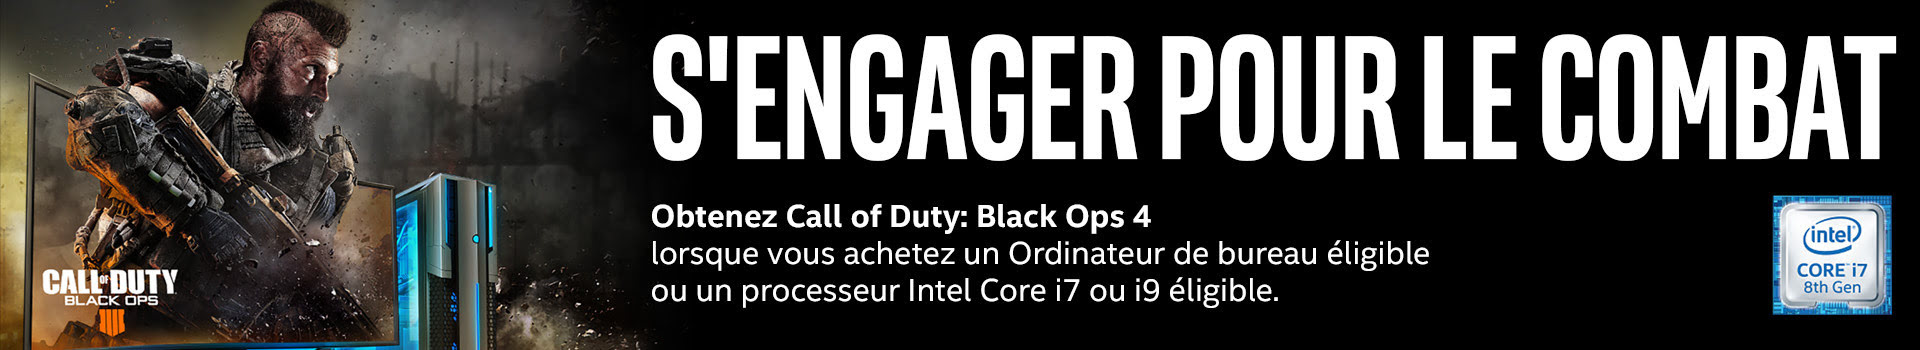 Intel Call of